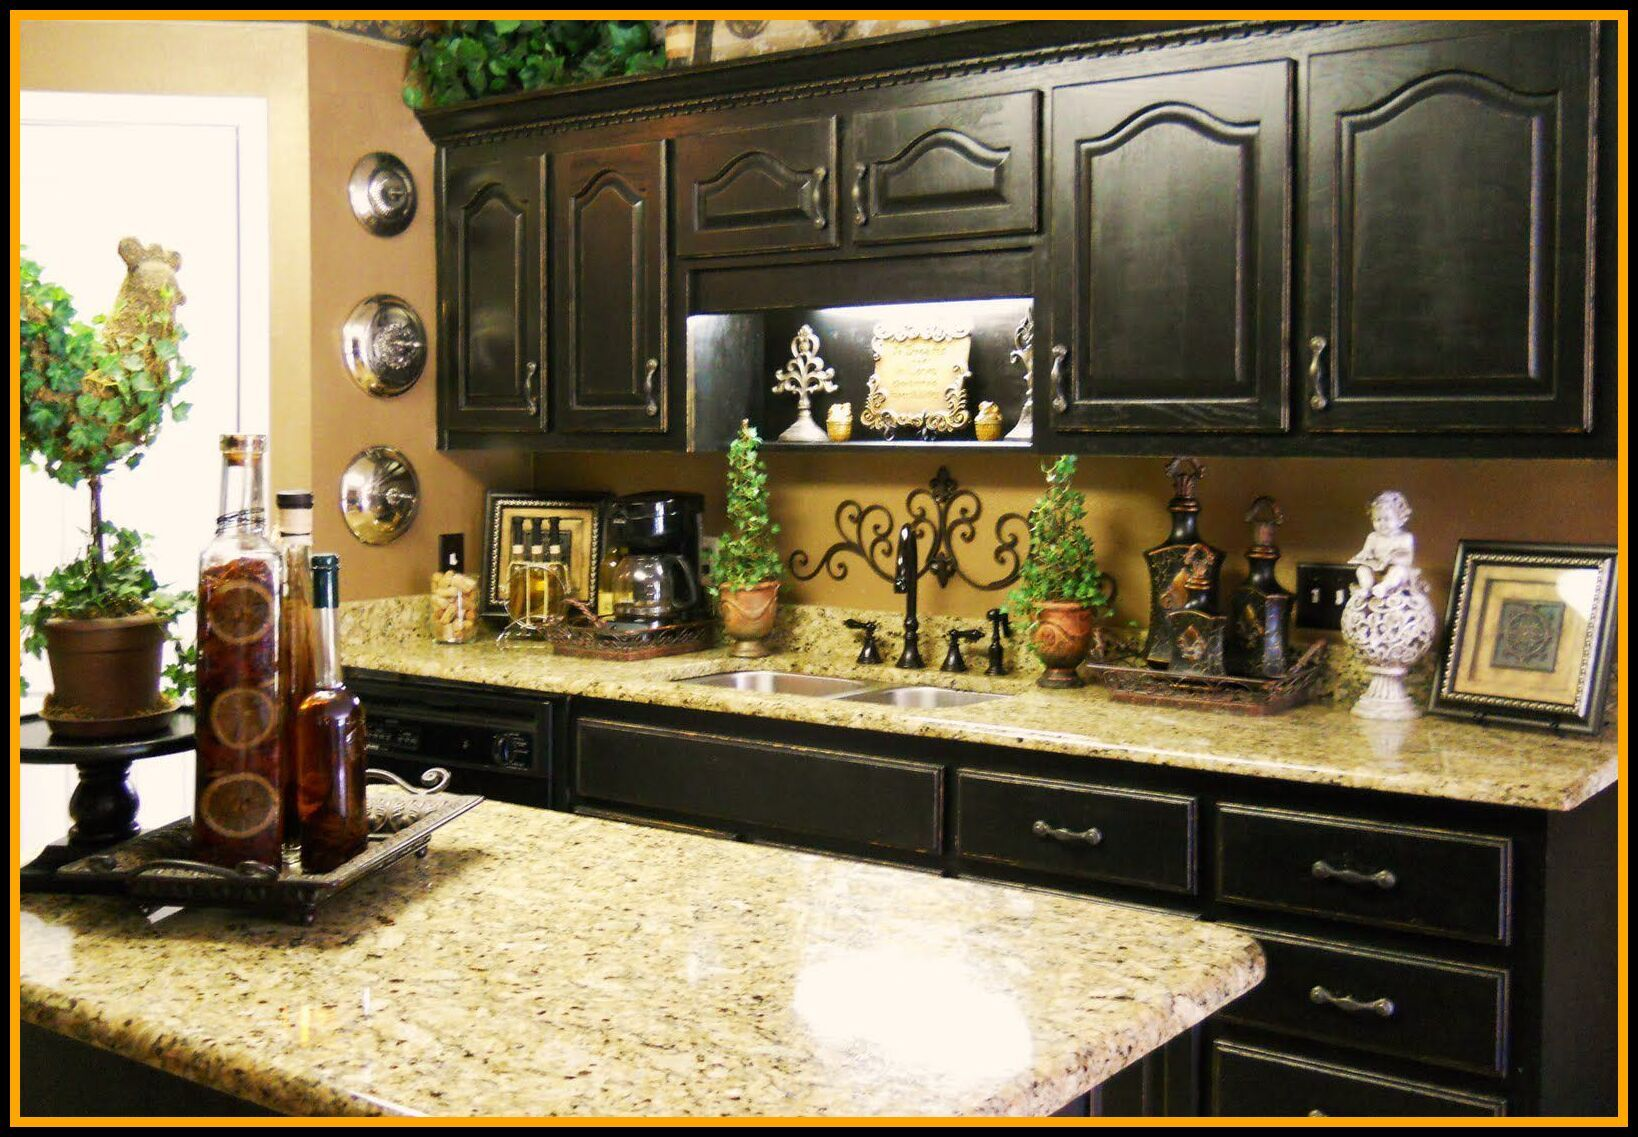 130 Reference Of Kitchen Counter Decor Pretty In 2020 Wine Decor Kitchen Wine Theme Kitchen Tuscan Kitchen